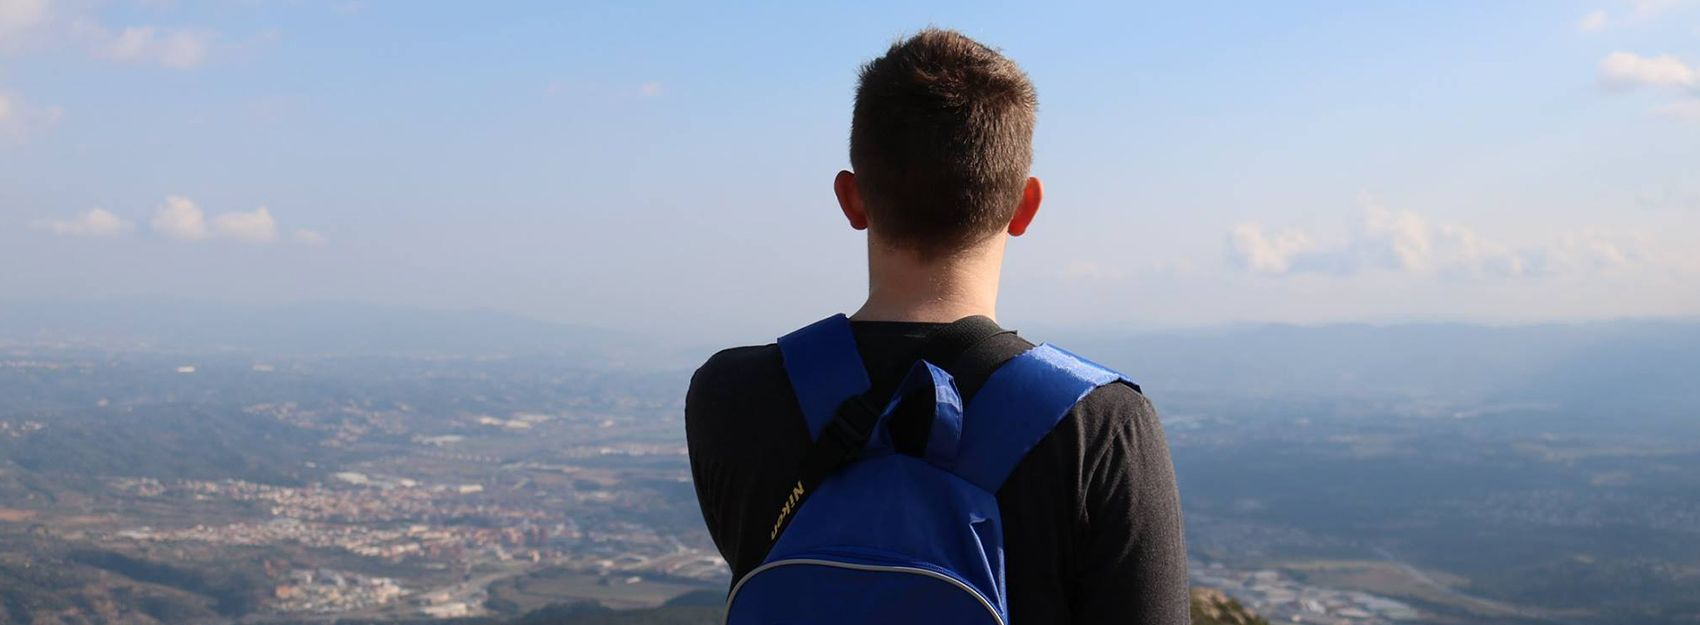 Study abroad student with a backpack on overlooking the view of a city